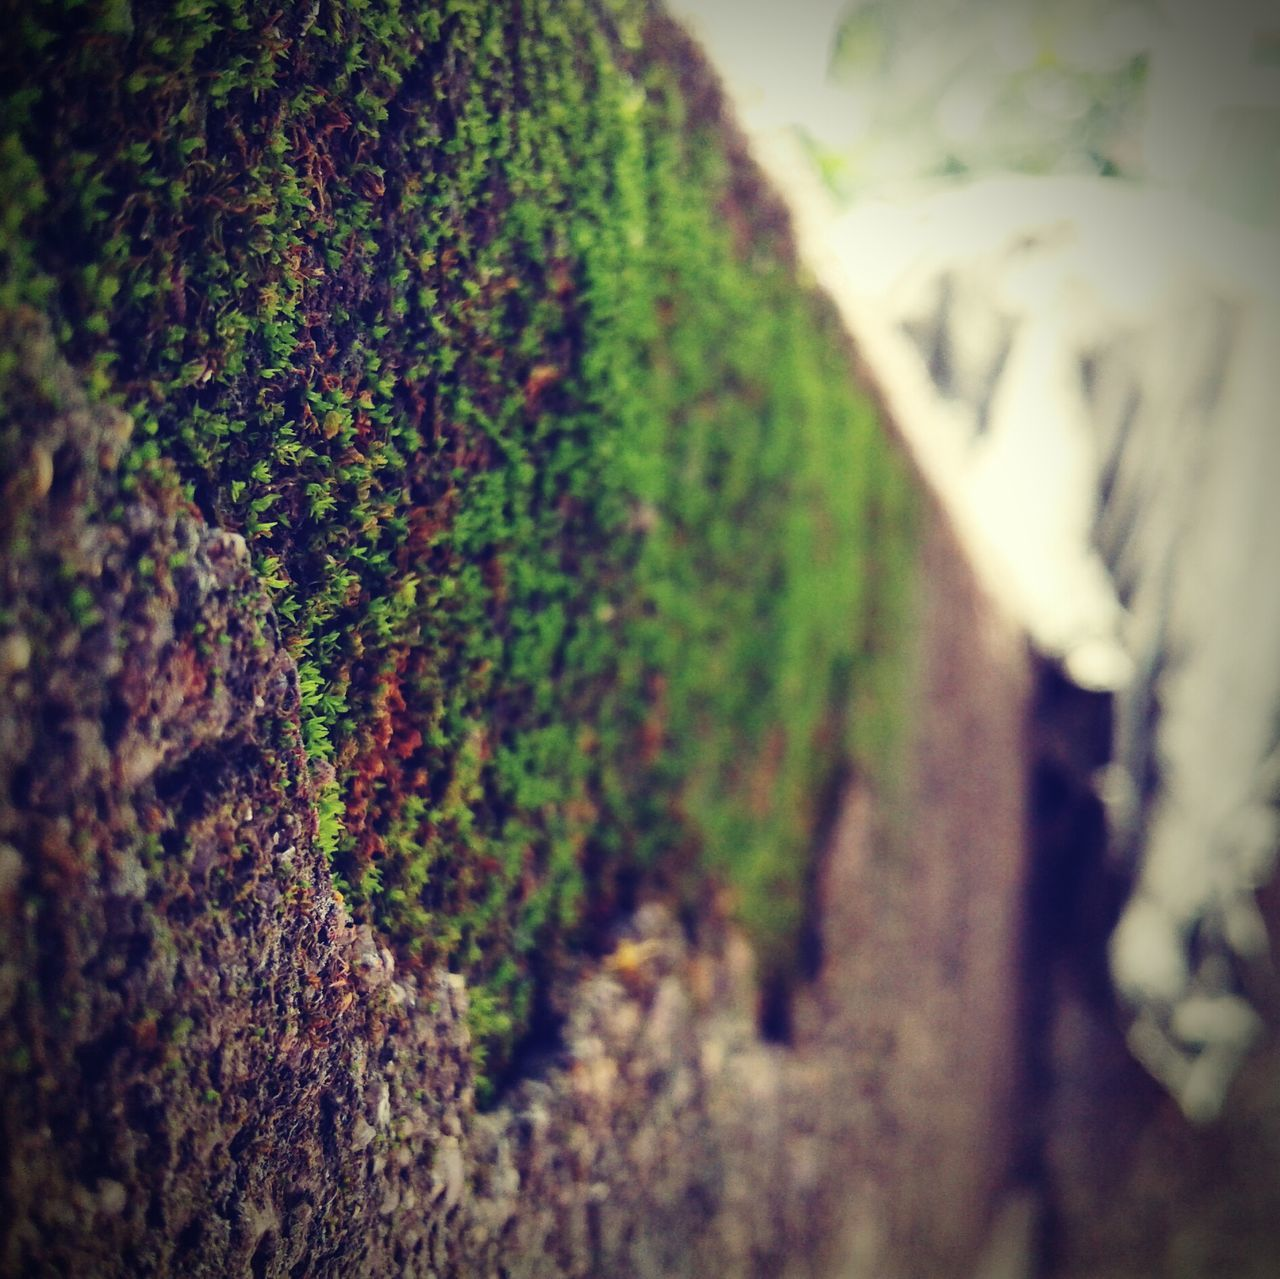 selective focus, nature, no people, day, close-up, plant, outdoors, growth, tree, beauty in nature, freshness